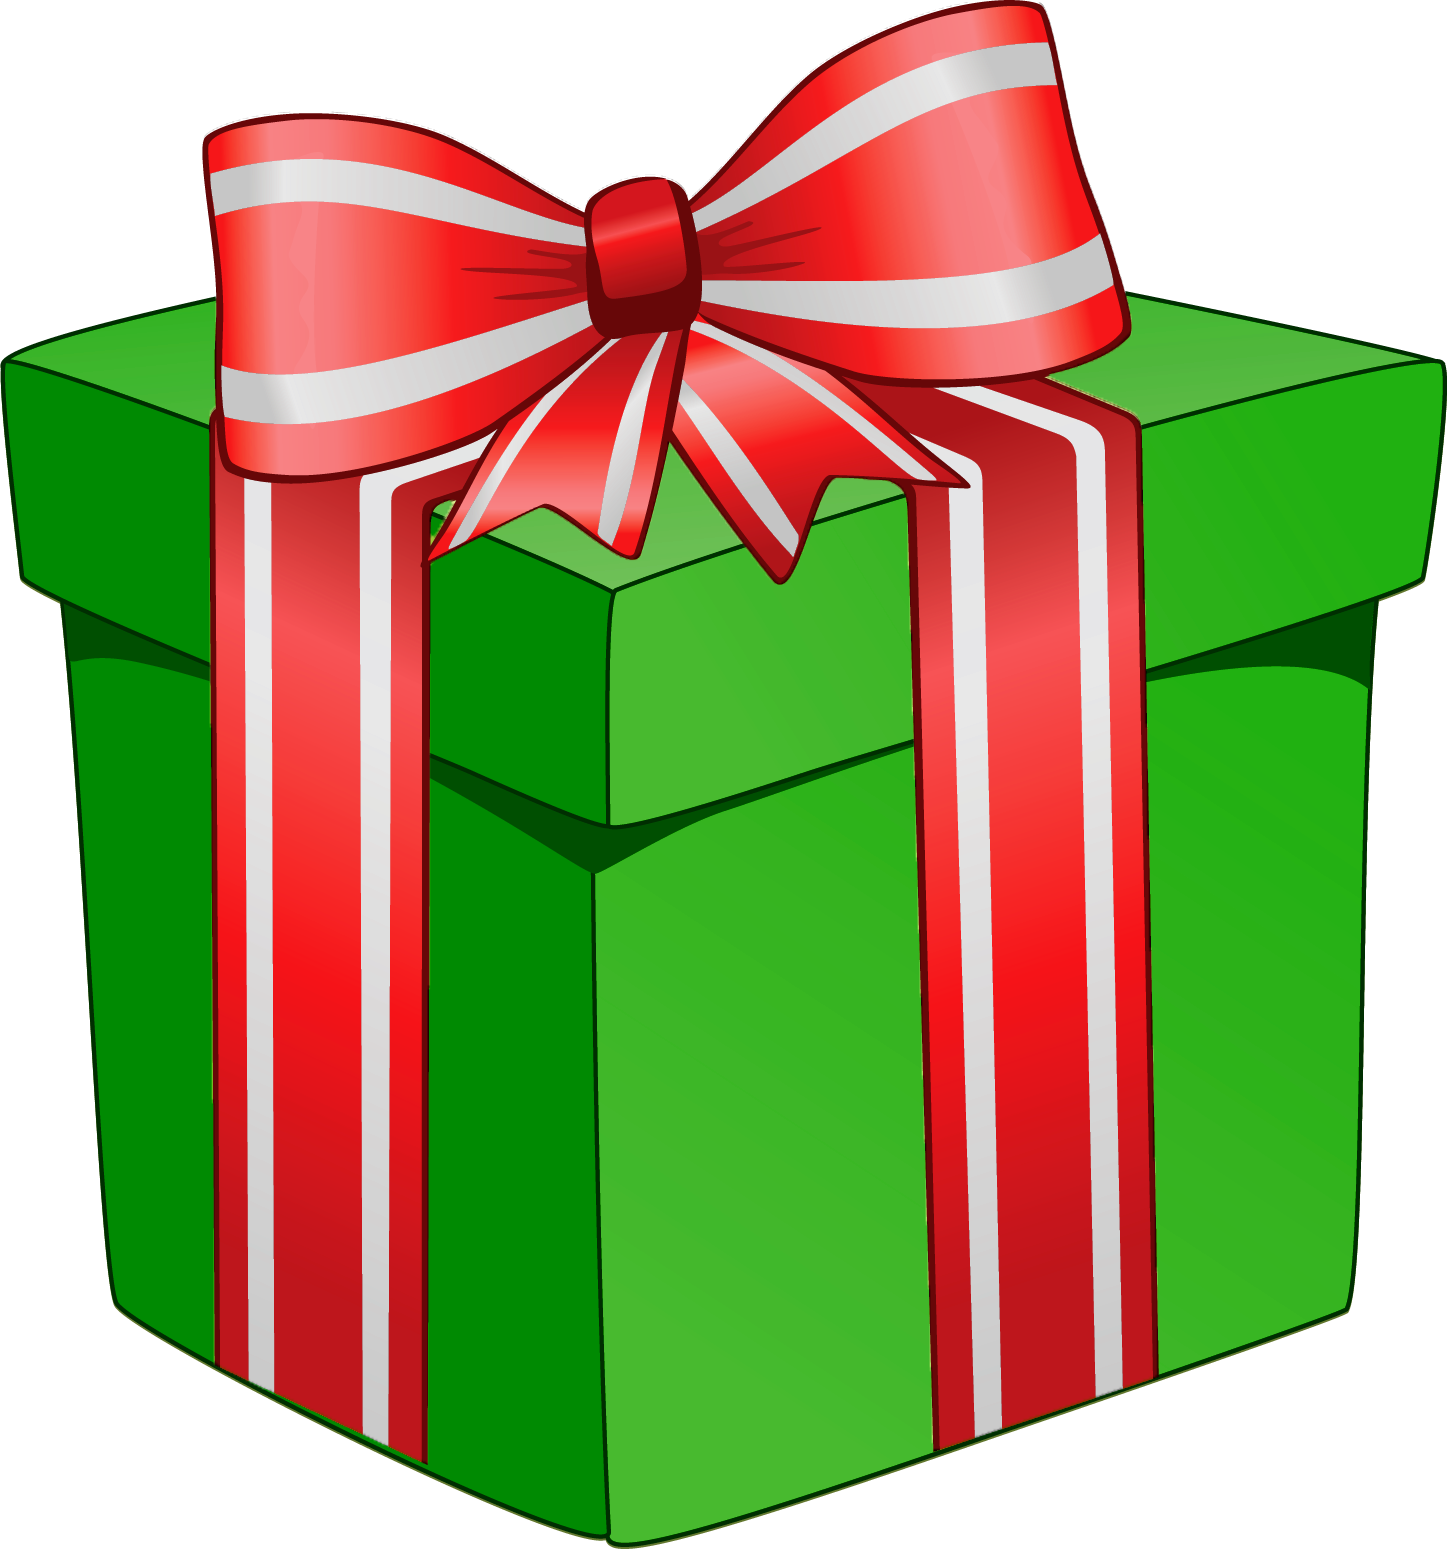 Parcel clipart gift Clipart t 5 download Gift